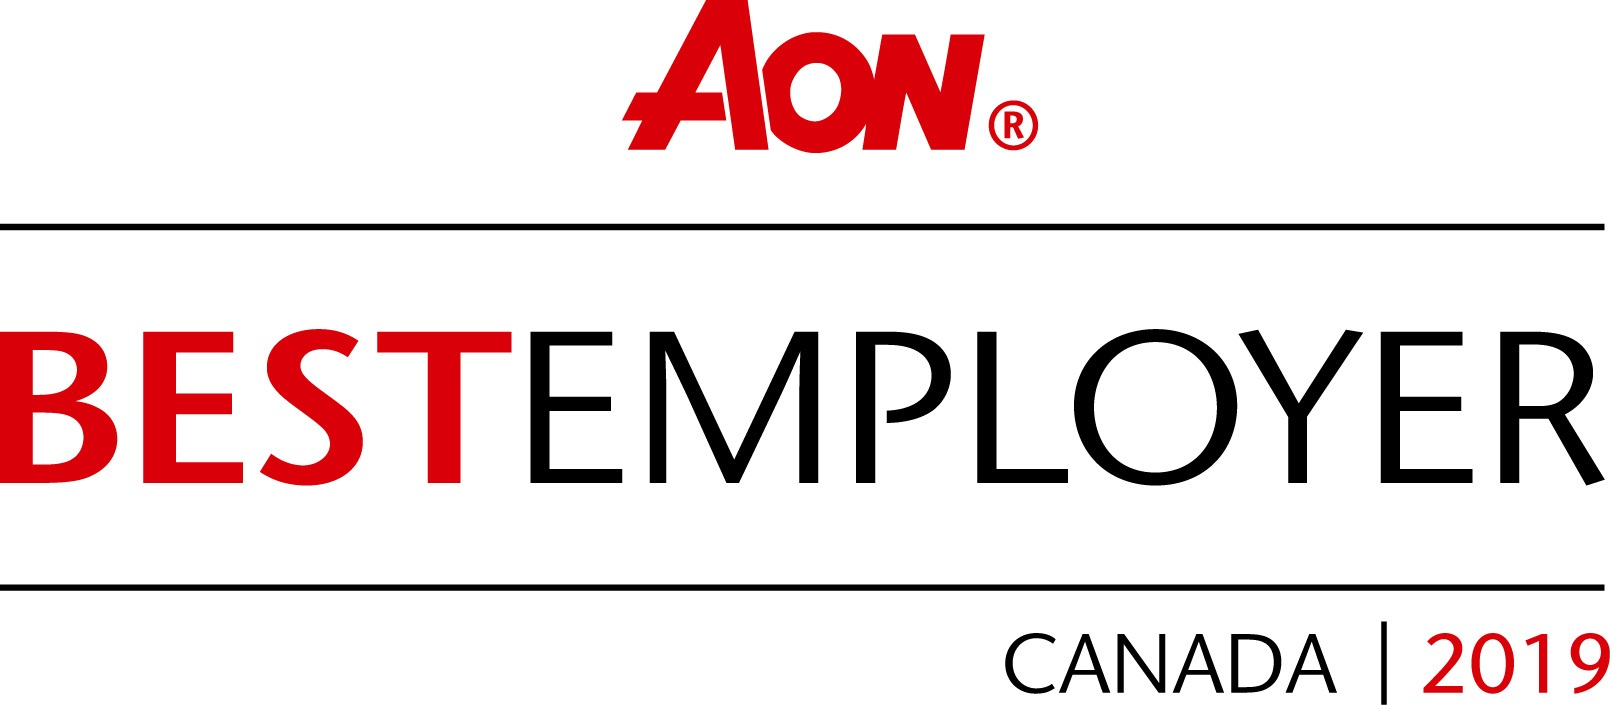 Aon Best Employer Canada 2019 Stamp Red